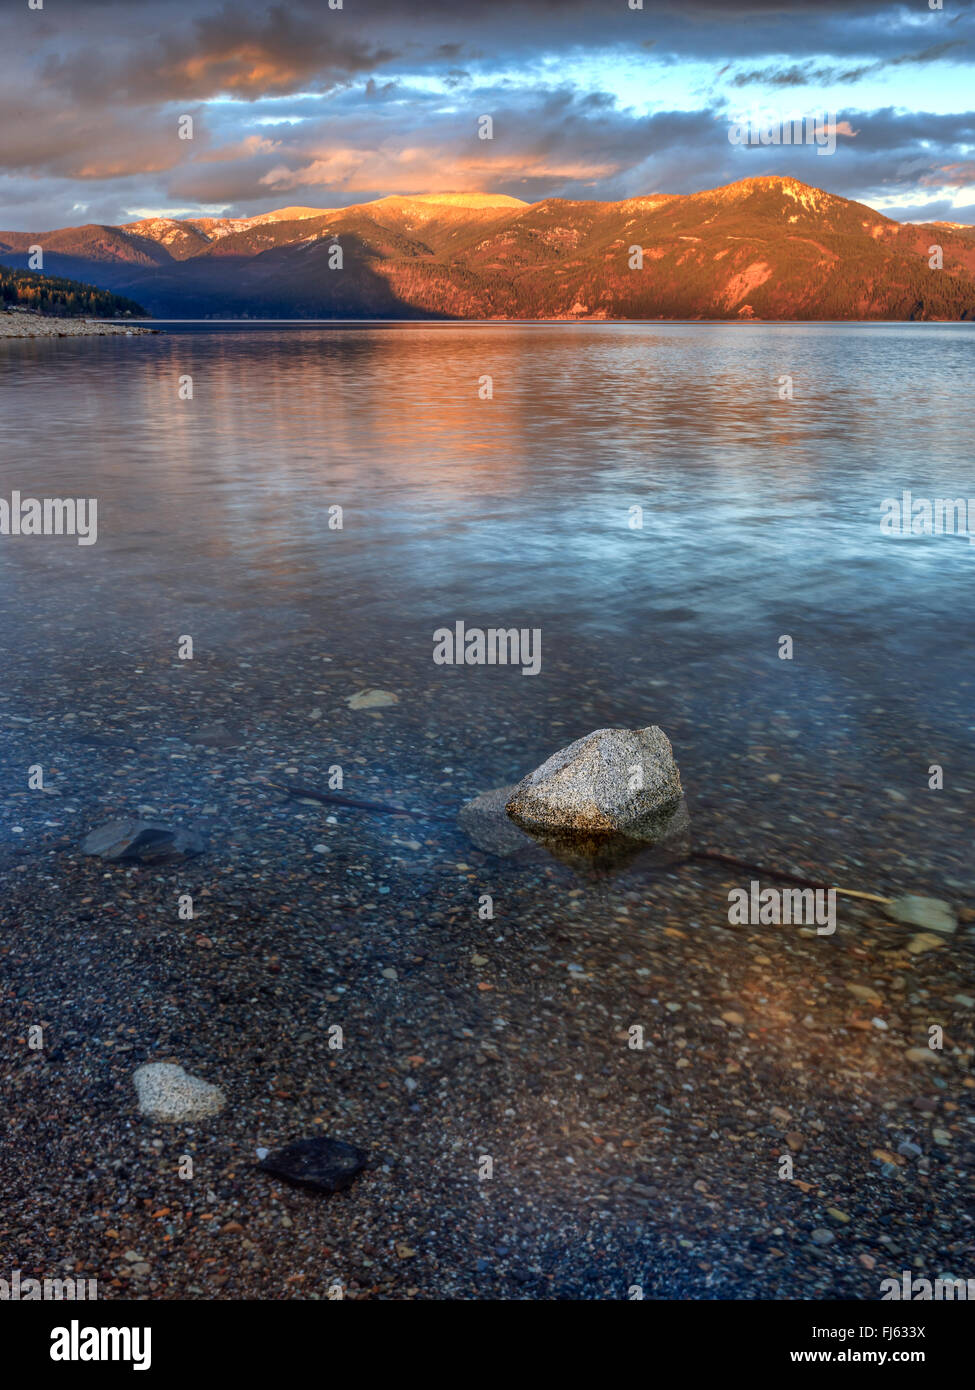 The clear waters of Pend Oreille Lake. - Stock Image